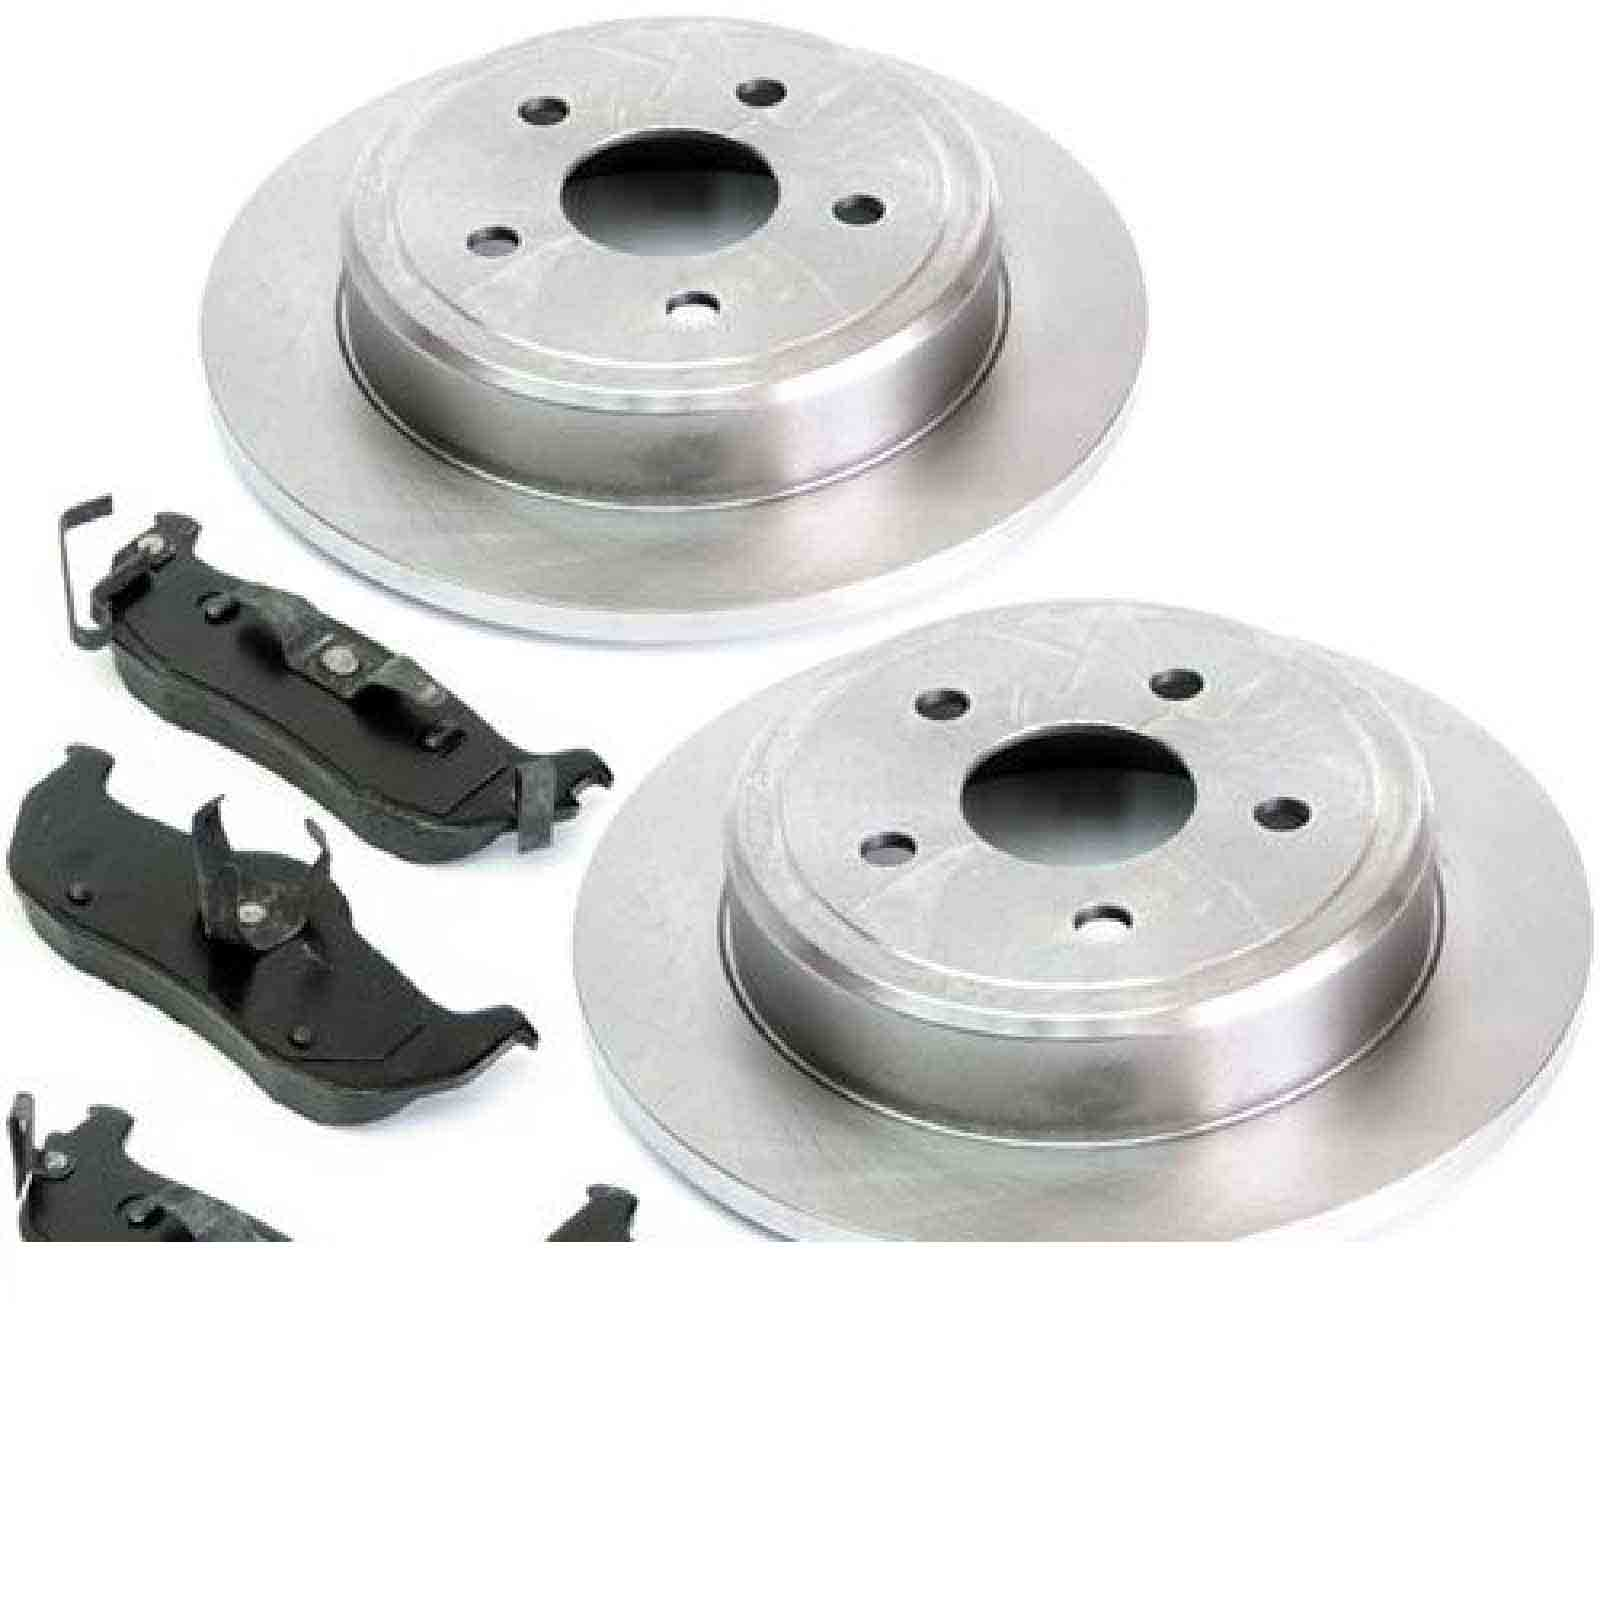 2 Dischi Freno Pastiglie Dei Freni Brake Rotore + Pad Set Jeep Commander 06 -